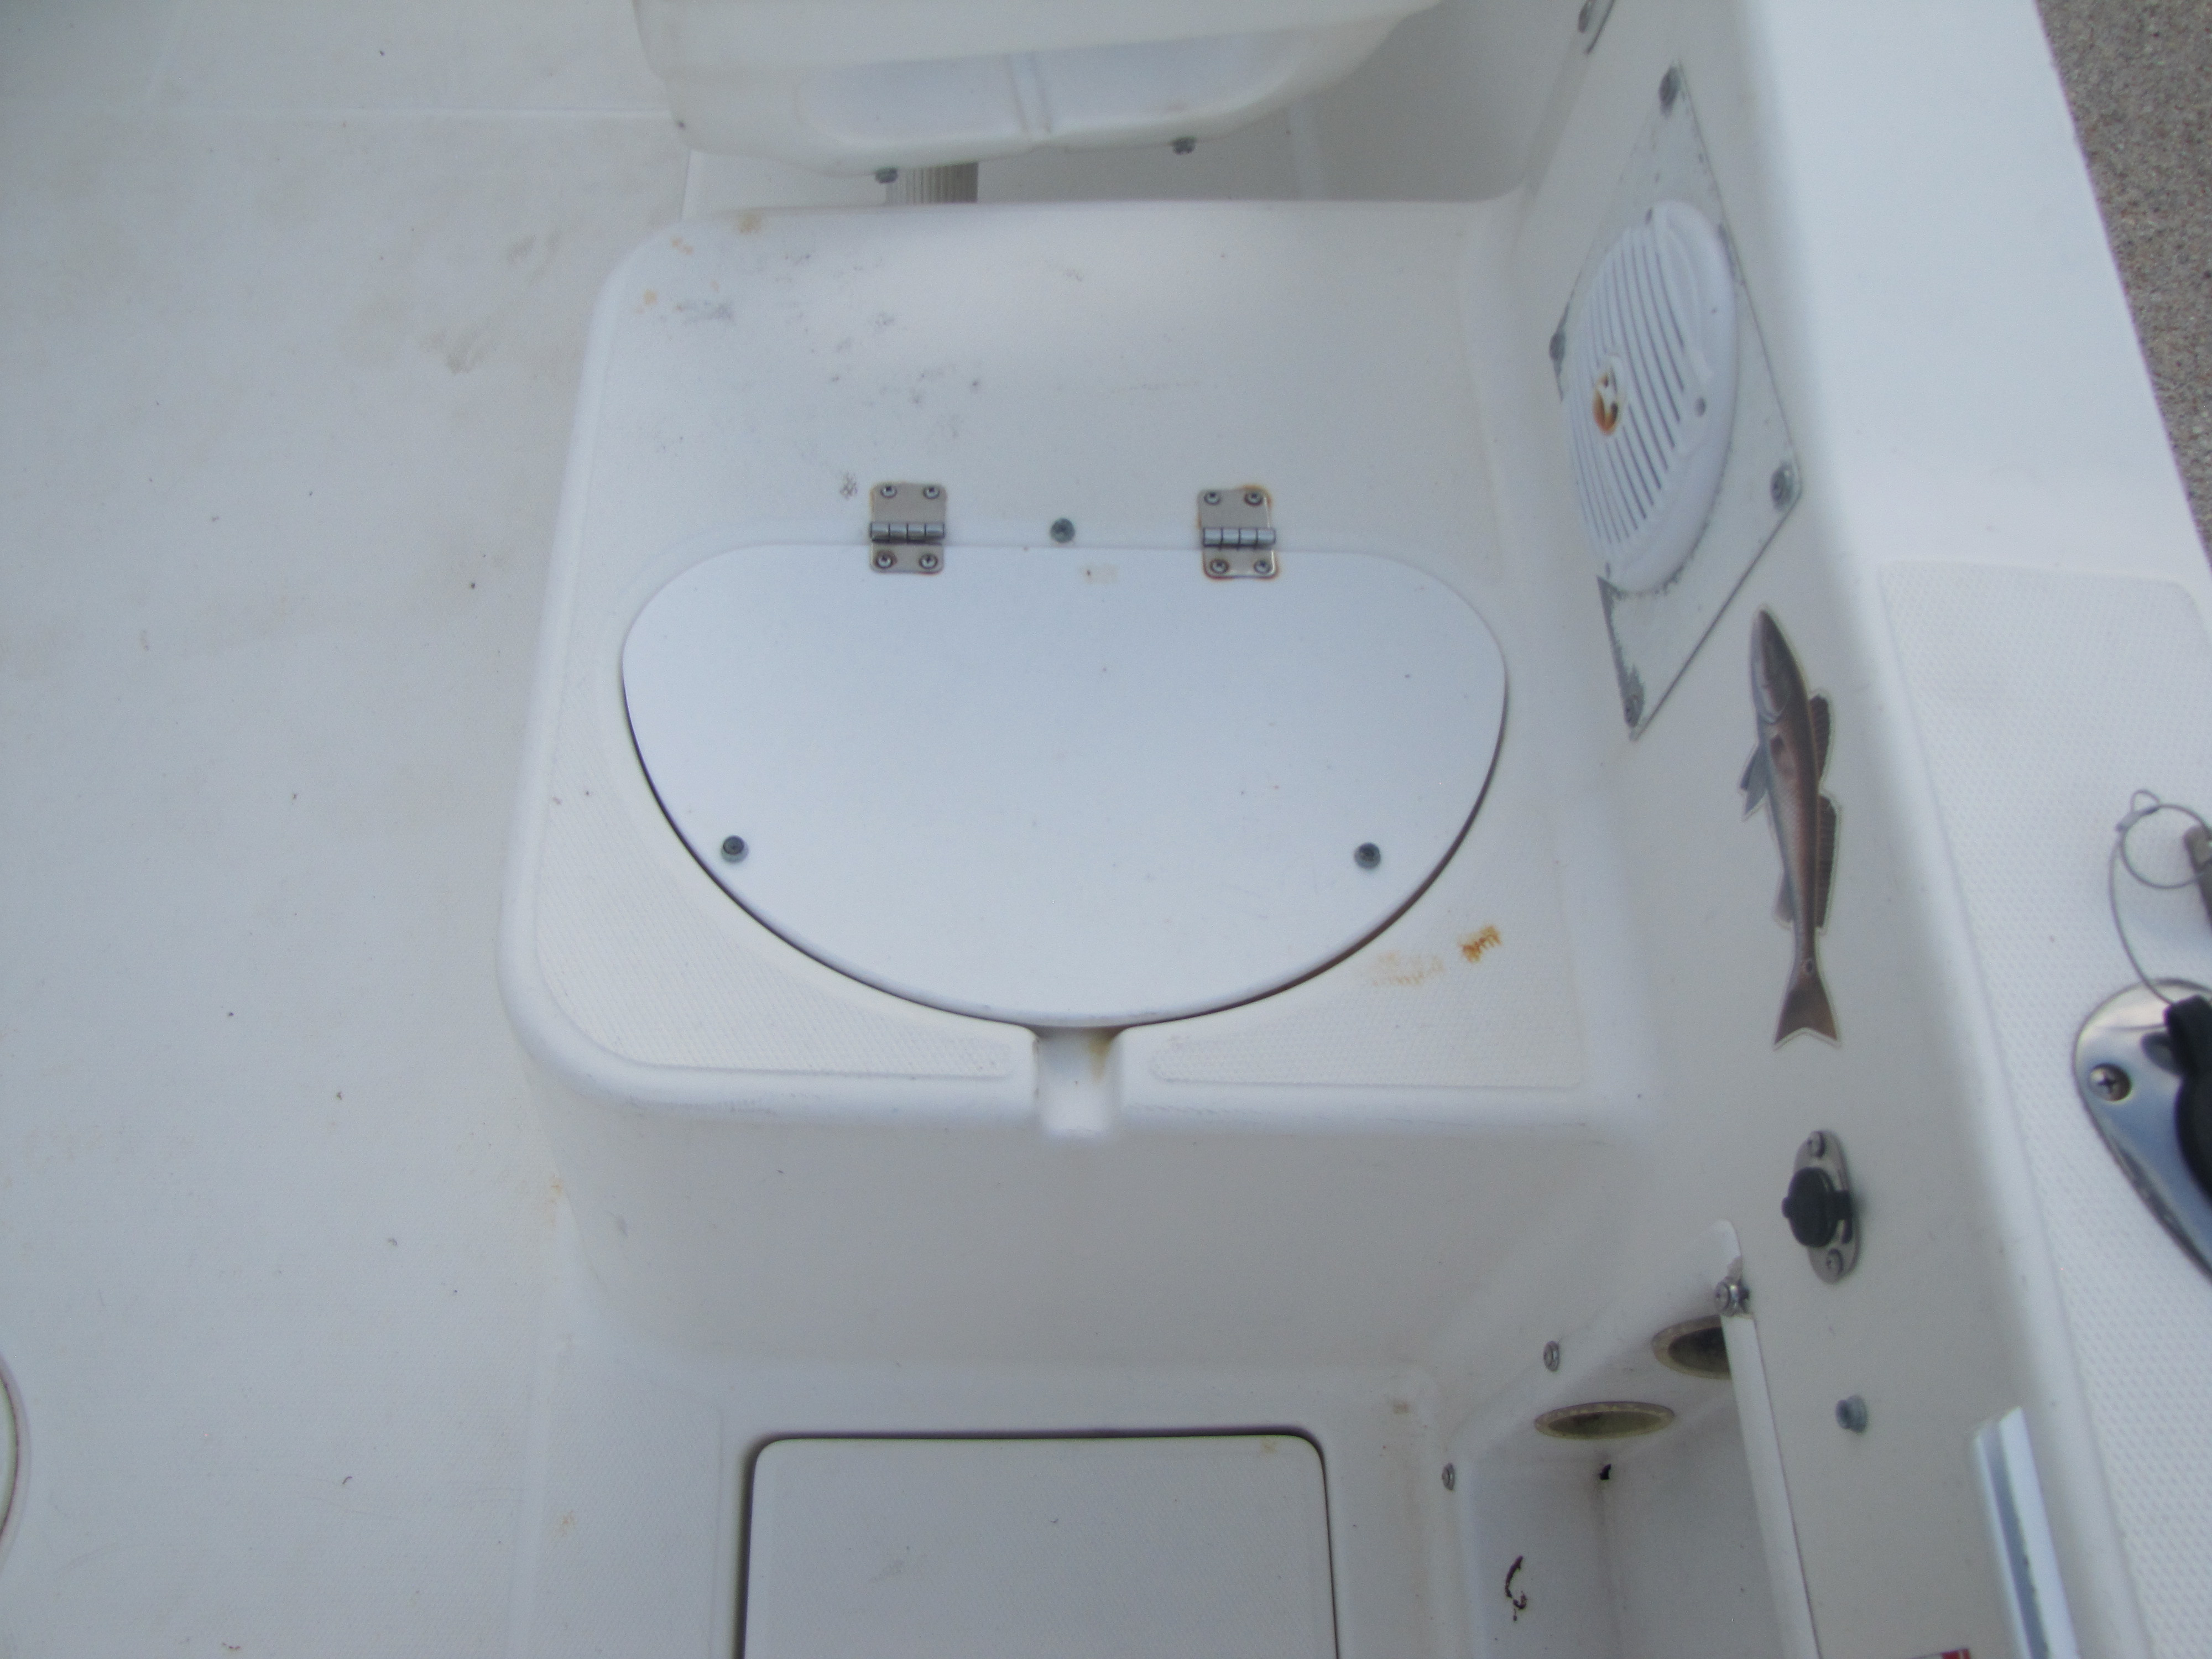 2000 Aquasport boat for sale, model of the boat is 215 Osprey Sport & Image # 4 of 21